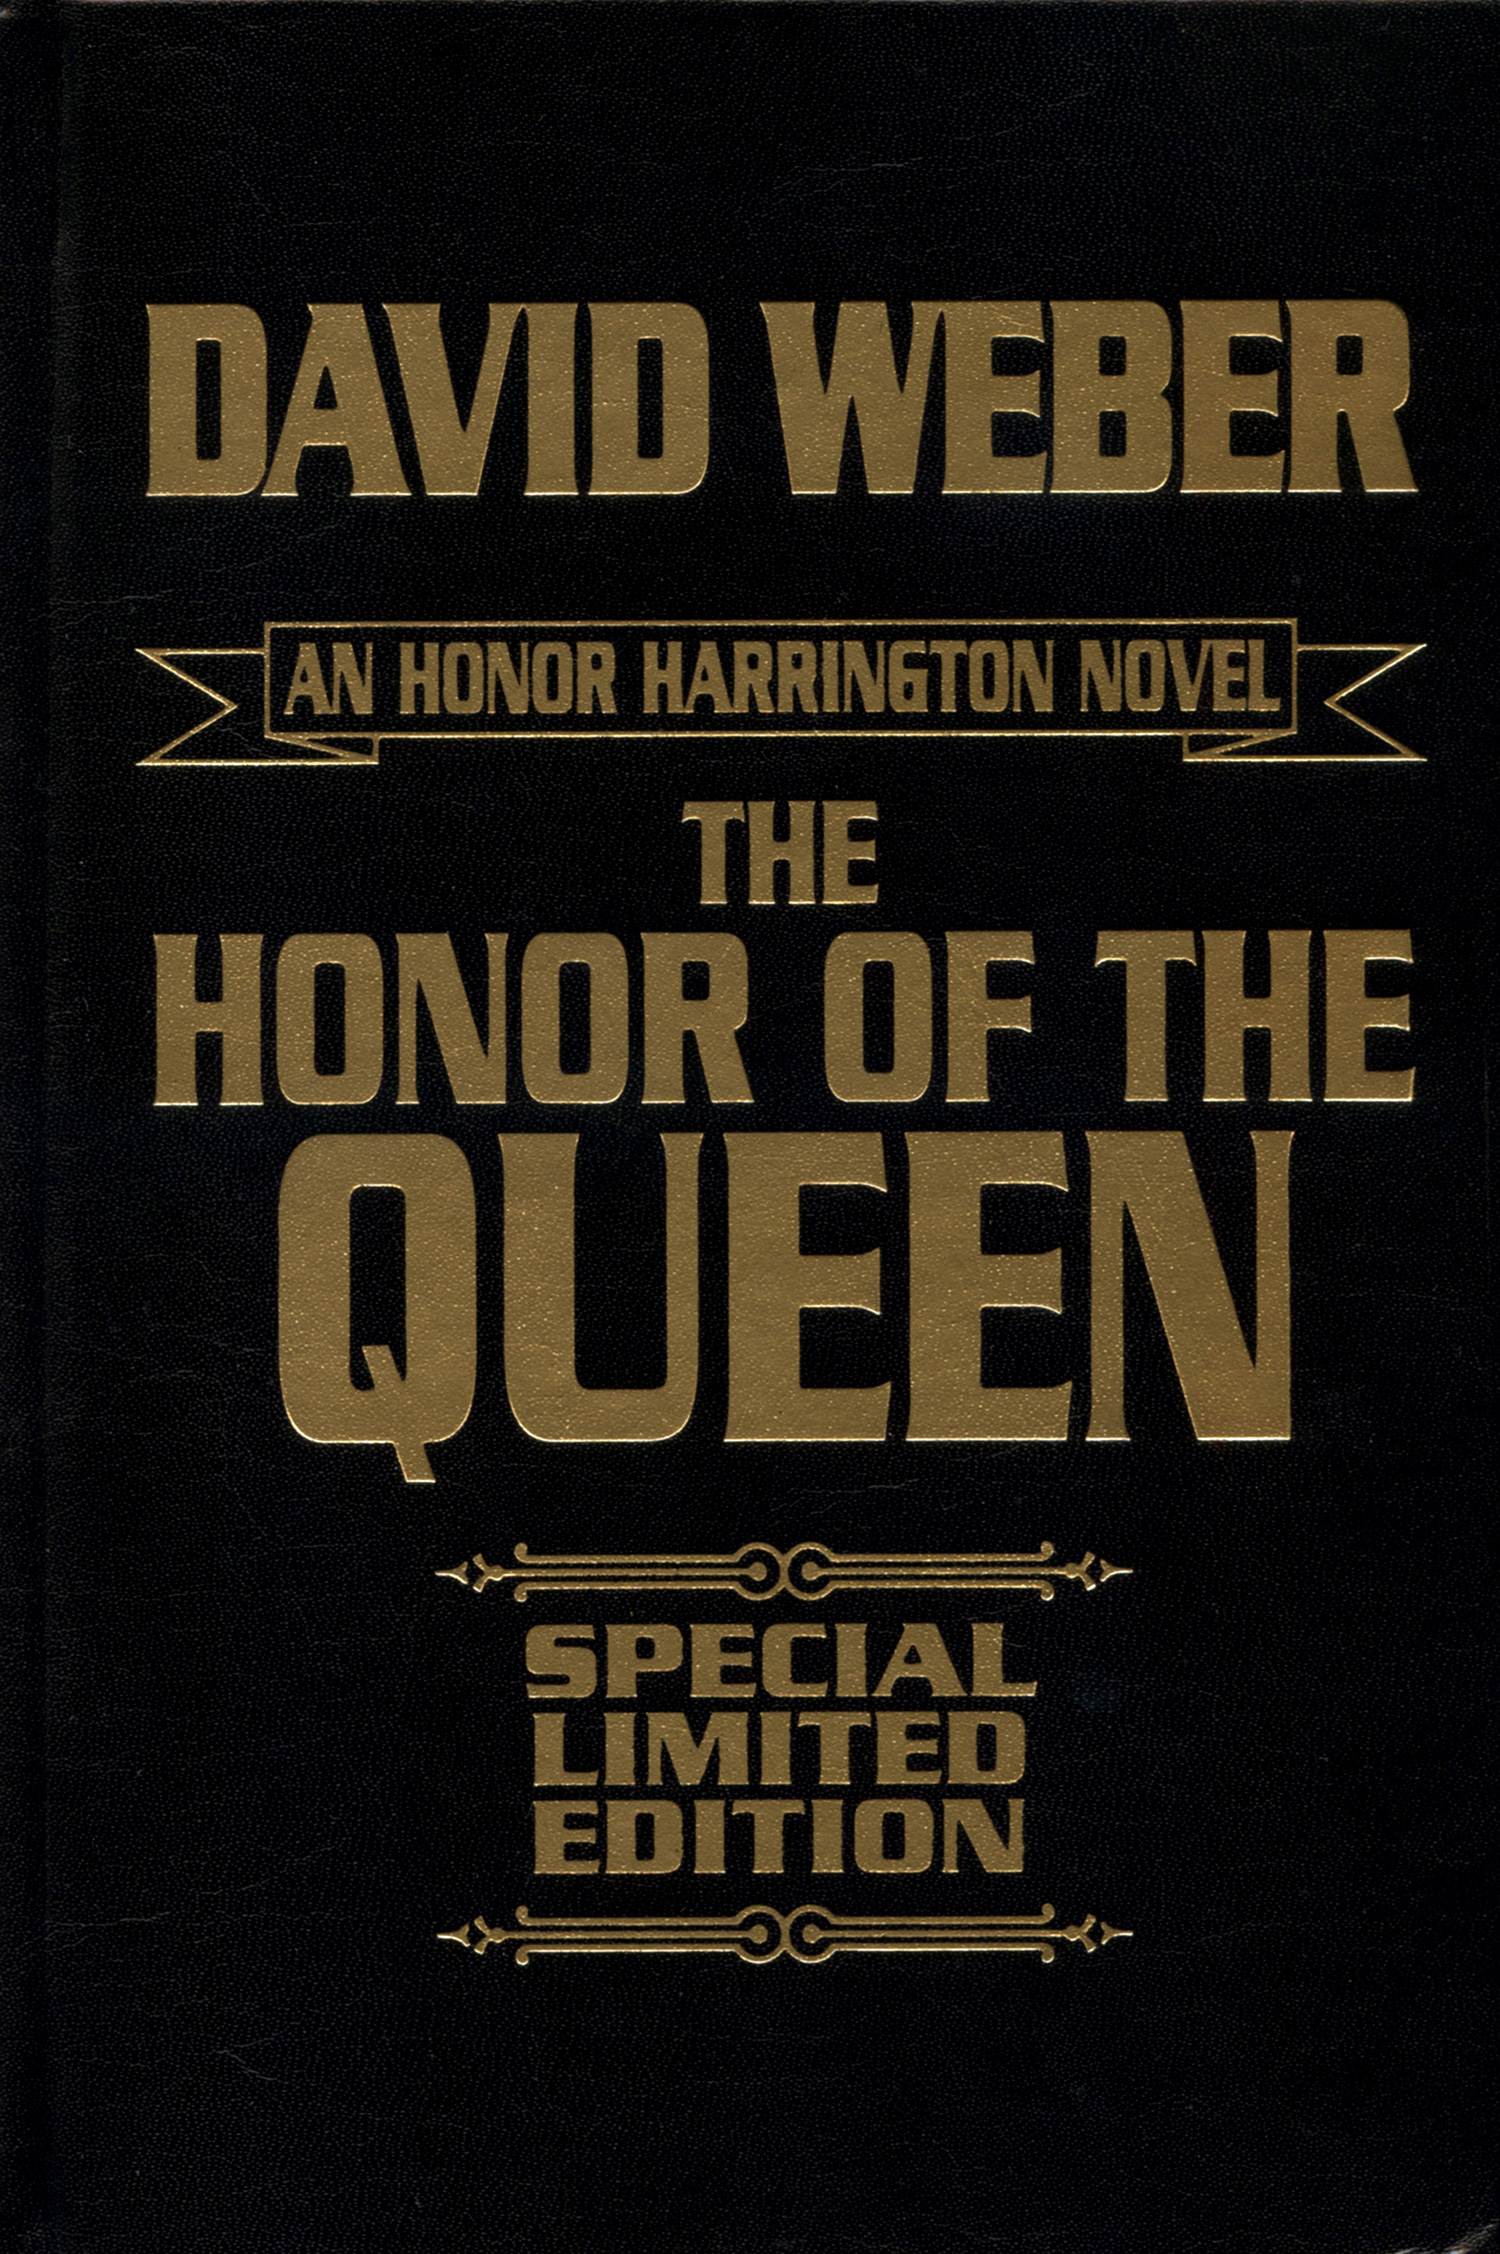 The Honor Of The Queen Special Limited Edition By David